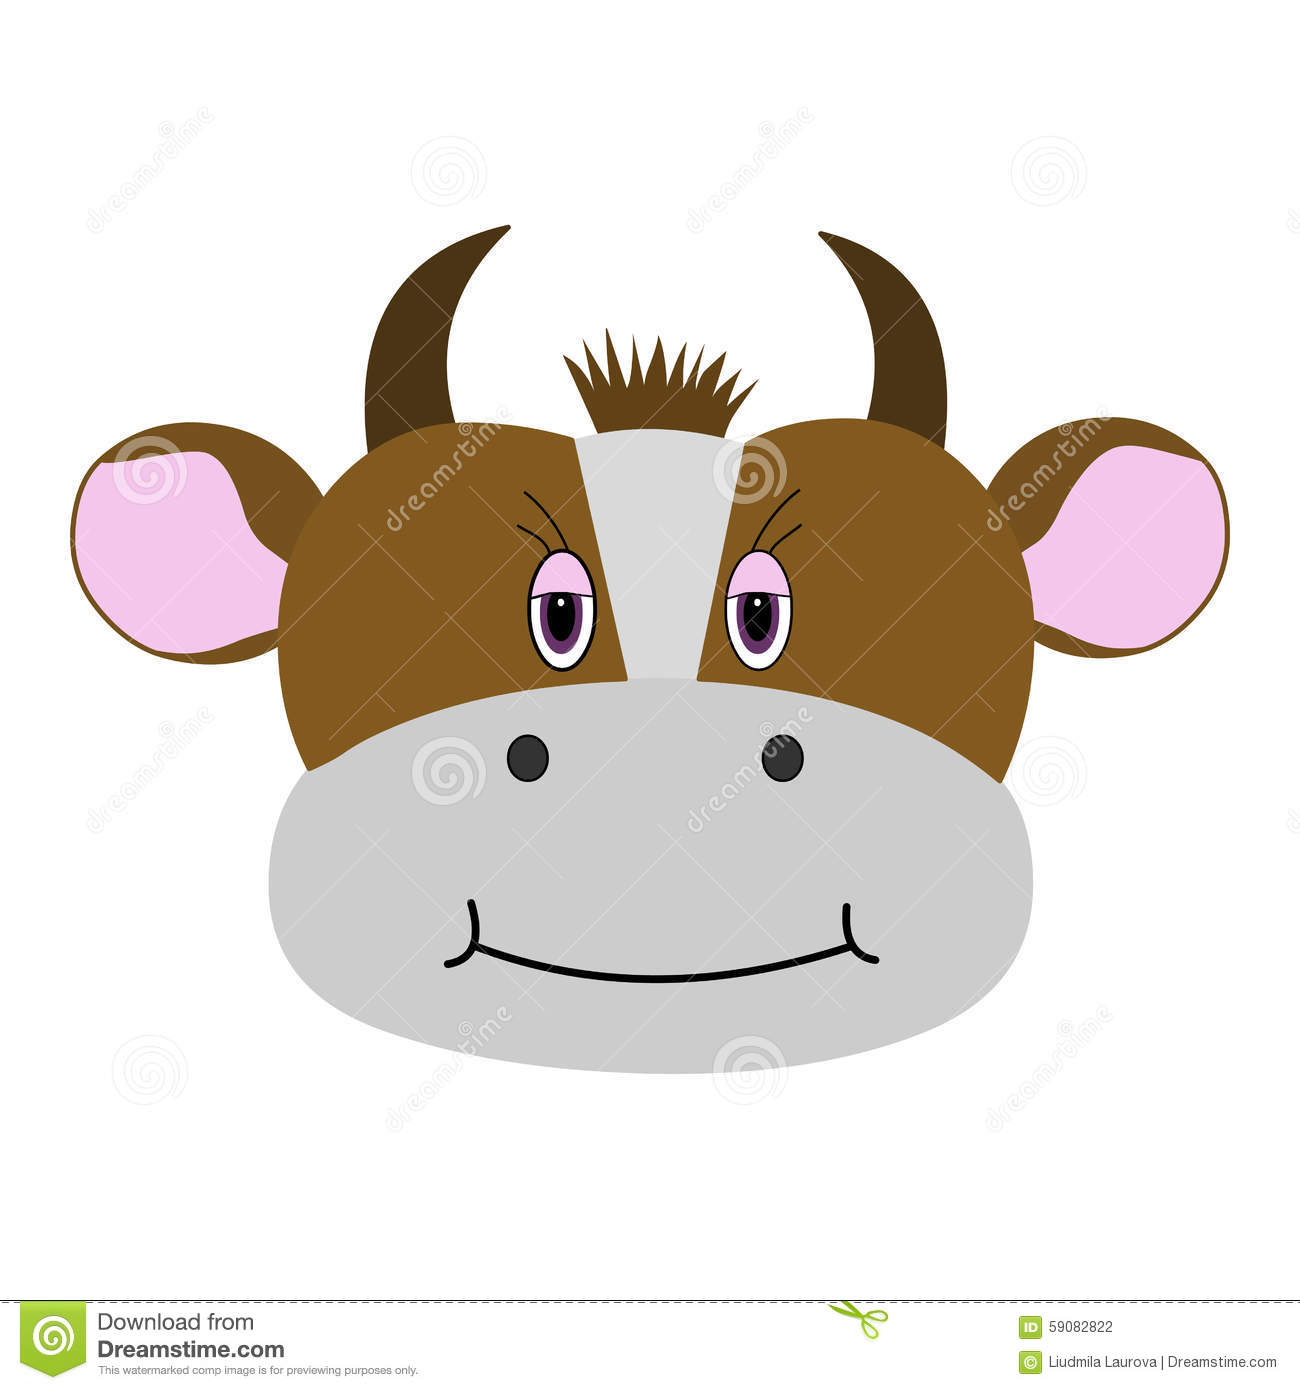 Isolation Carton Cute Cow Cartoon On A White Background Isolation Stock